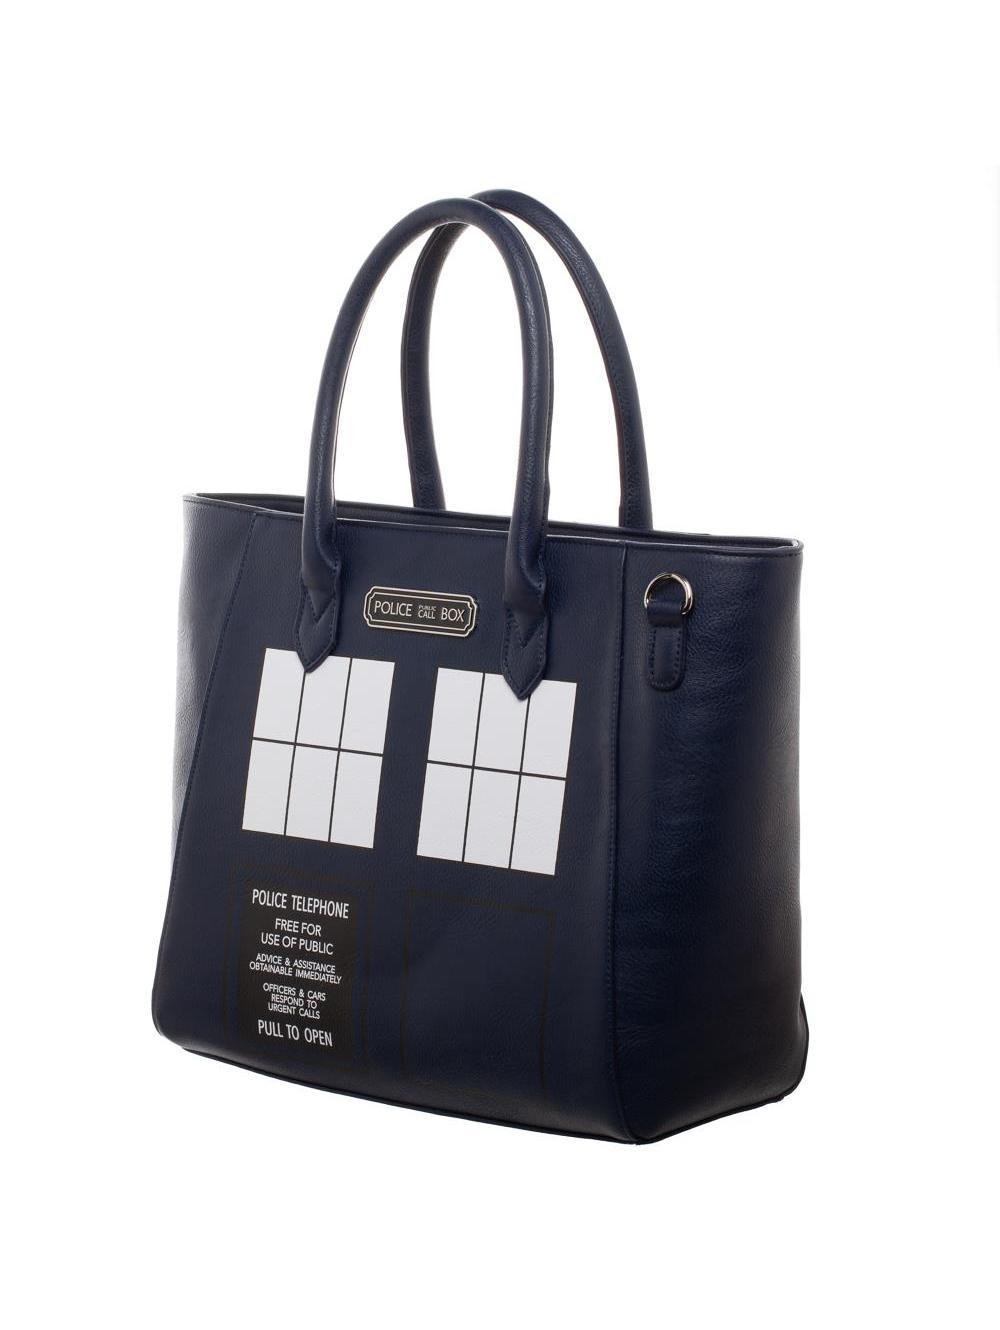 DOCTOR WHO - TARDIS Season 11 Tote Bag